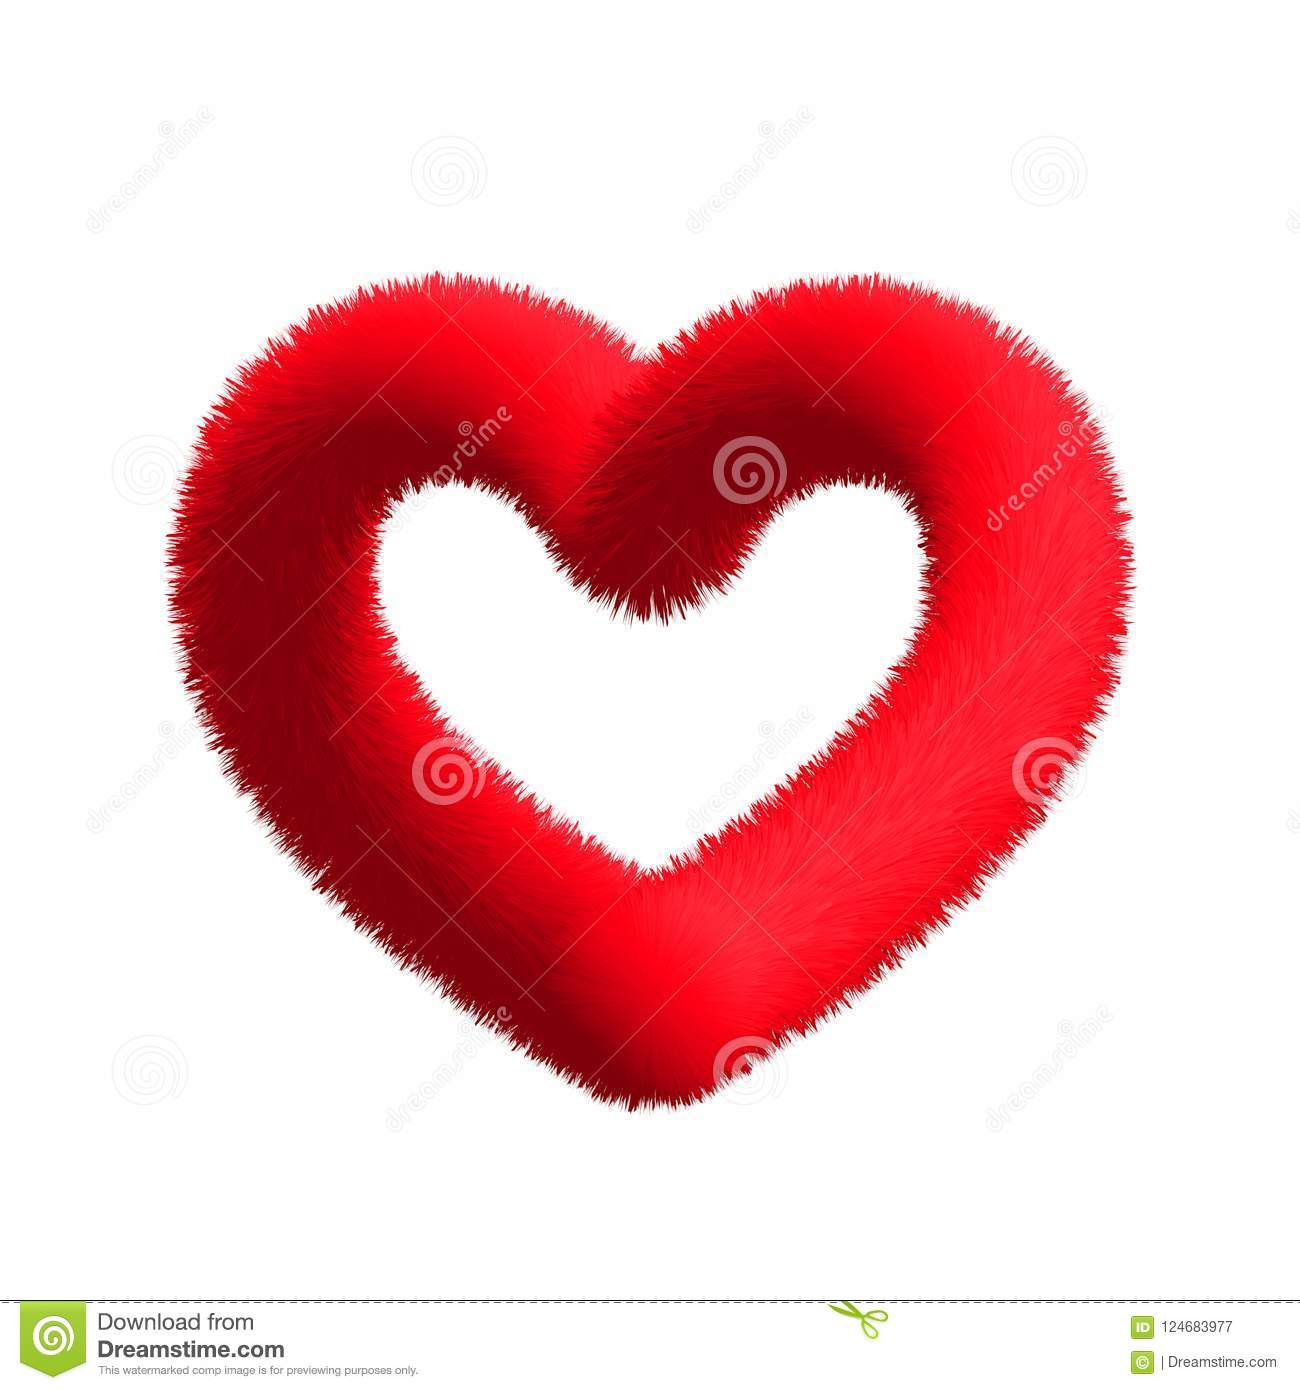 Christmas Tinsel Transparent.Fluffy Furry Red Heart On A Transparent Background Stock